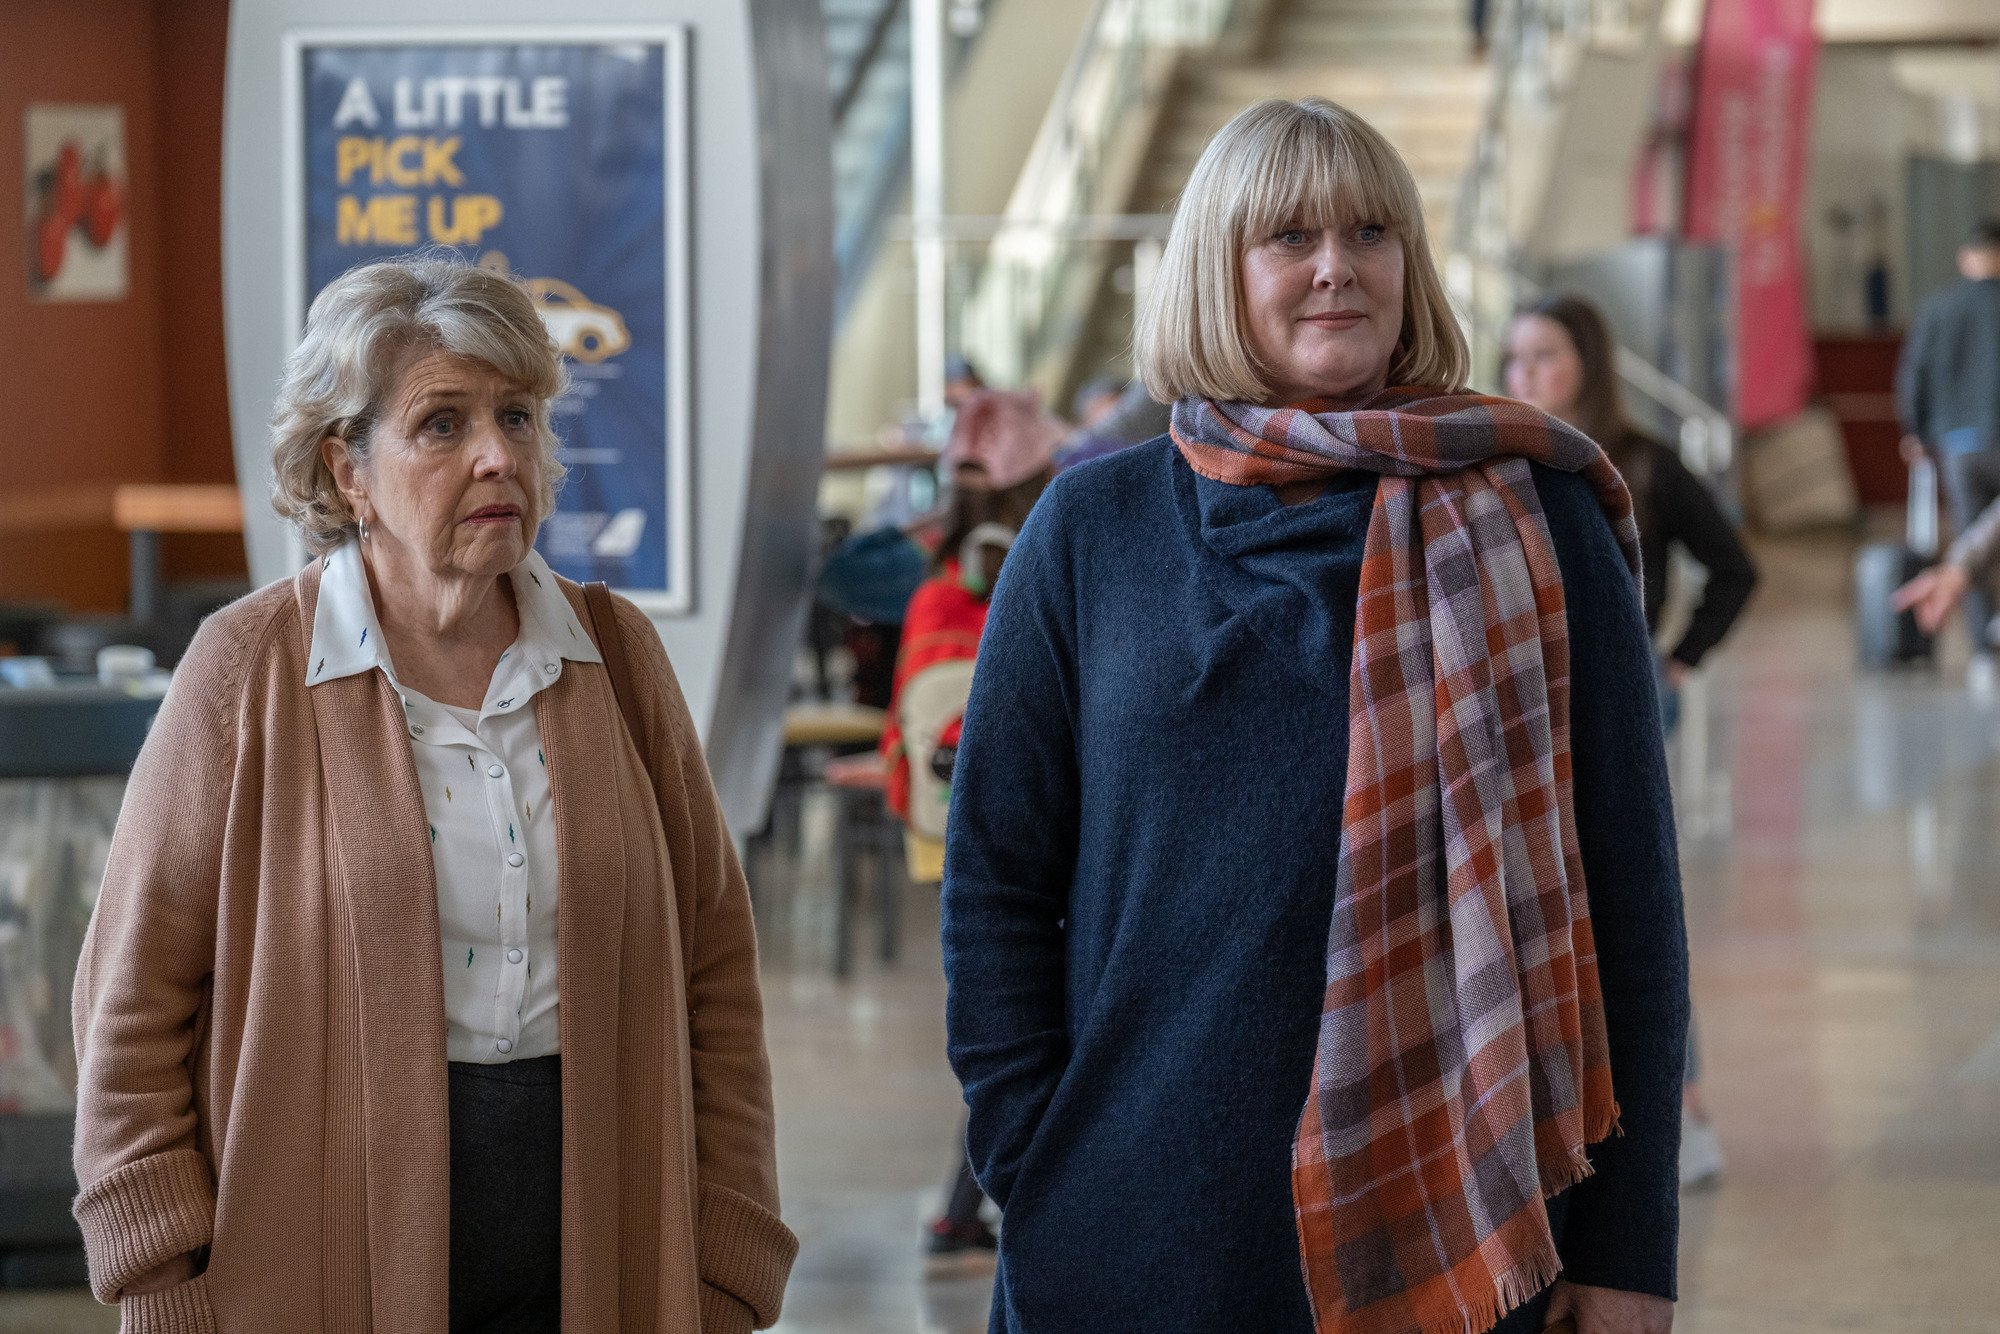 Romance does not go according to plan for Caroline in Last Tango in Halifax